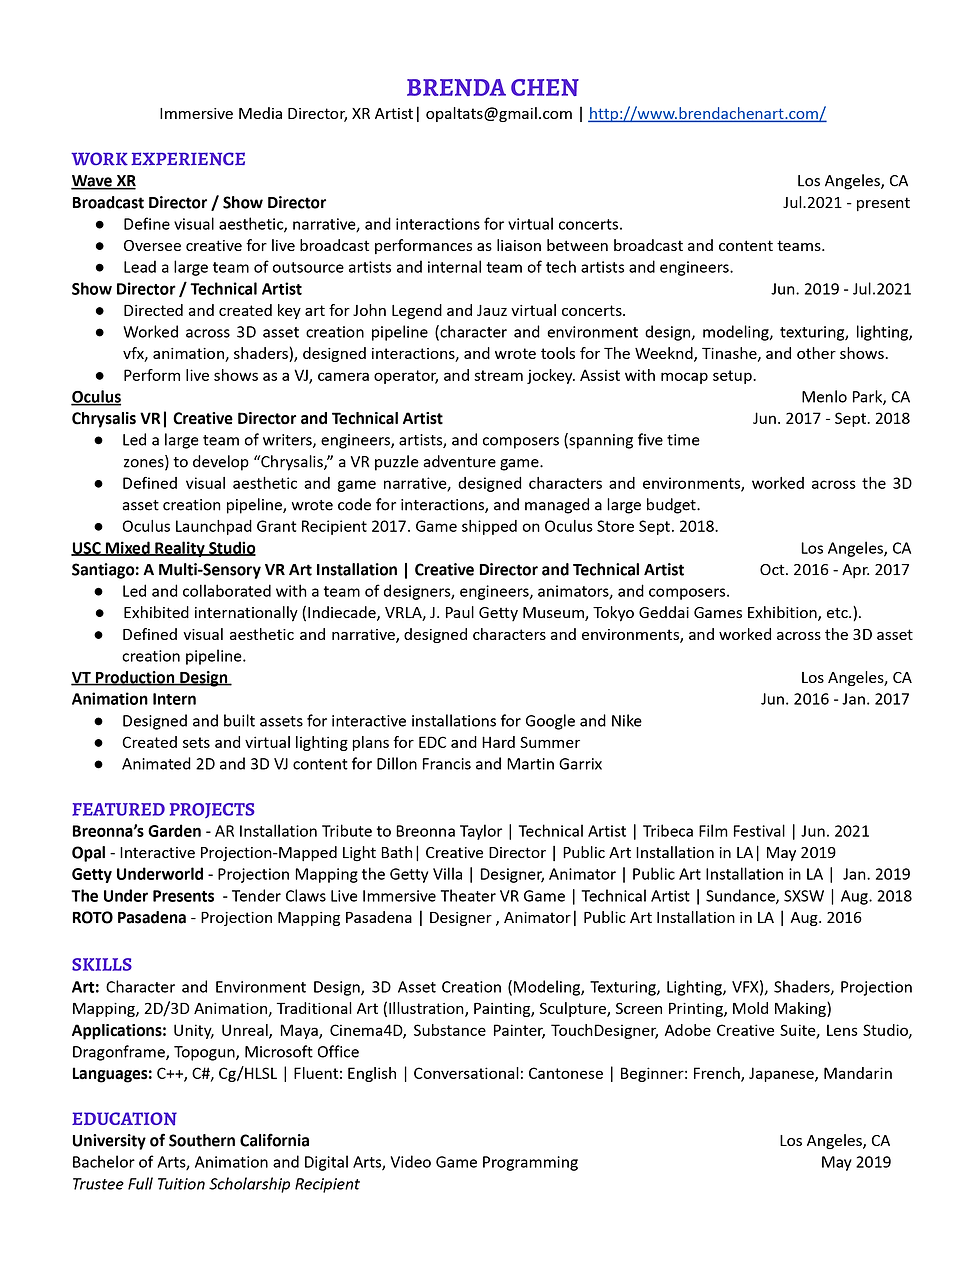 BrendaChen_Resume_Fall2021.png